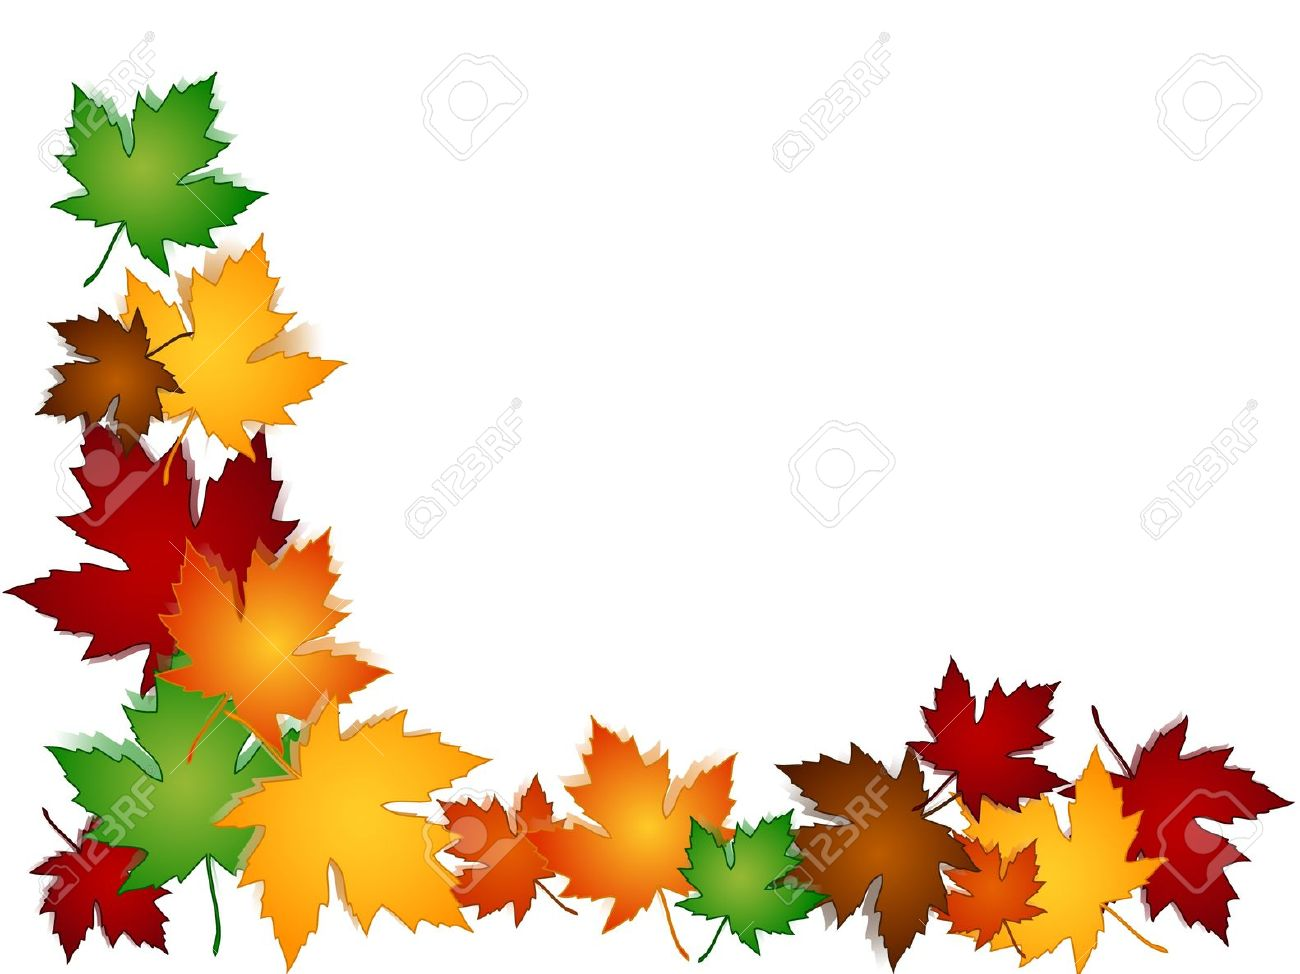 Fall color clipart.